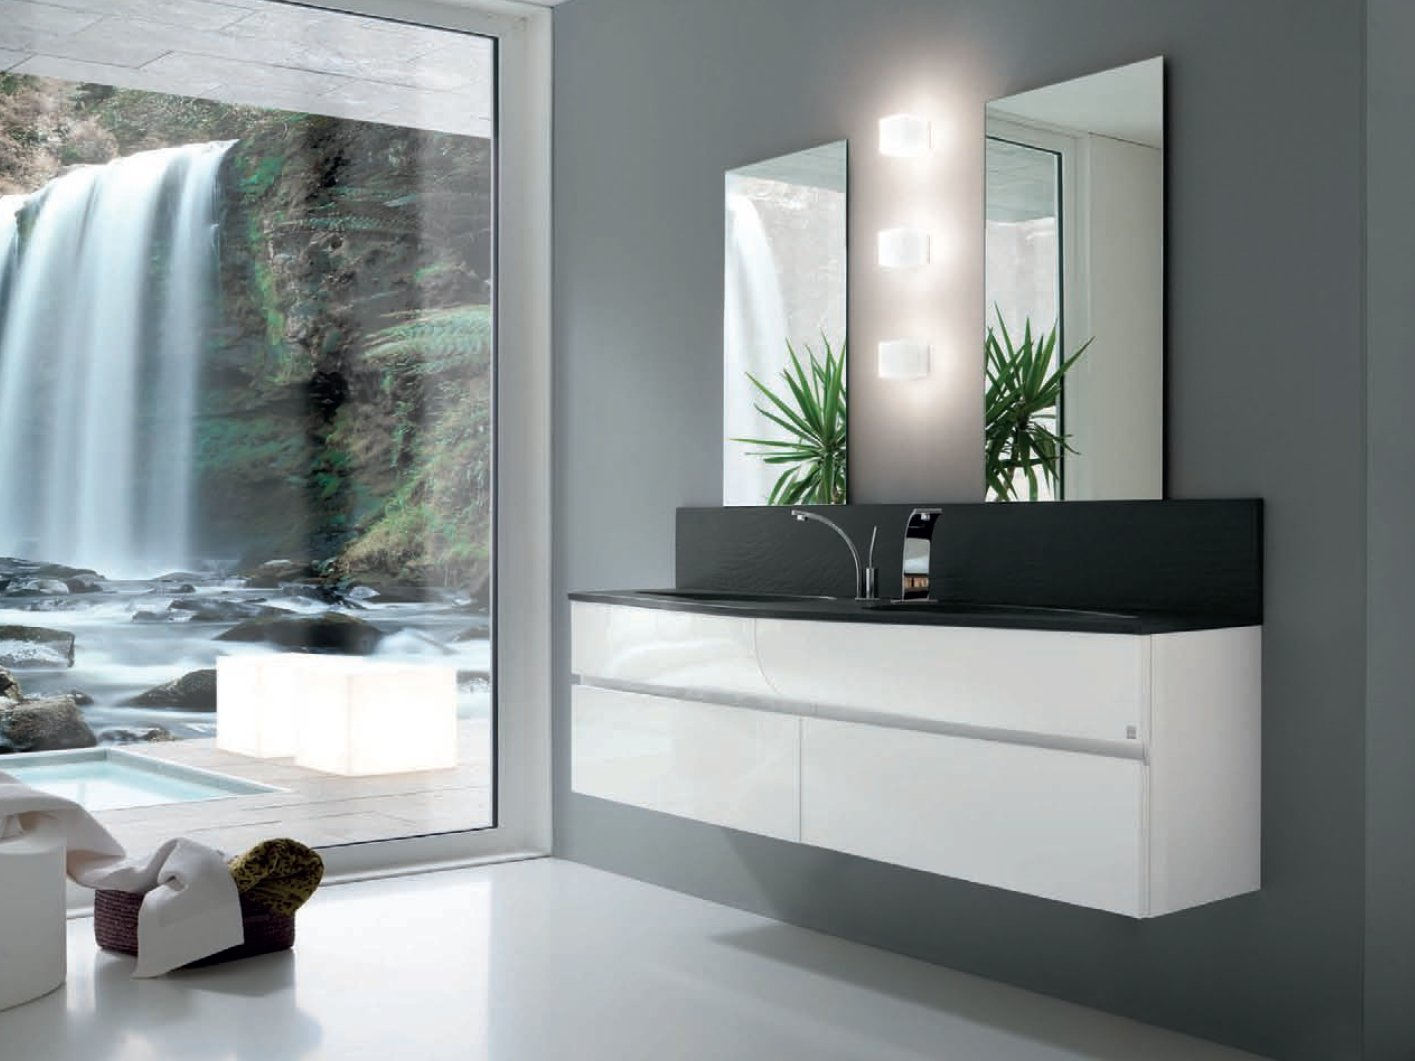 Meuble sous vasque simple ab 7020 collection wave by rab for Salle de bain vocabulaire